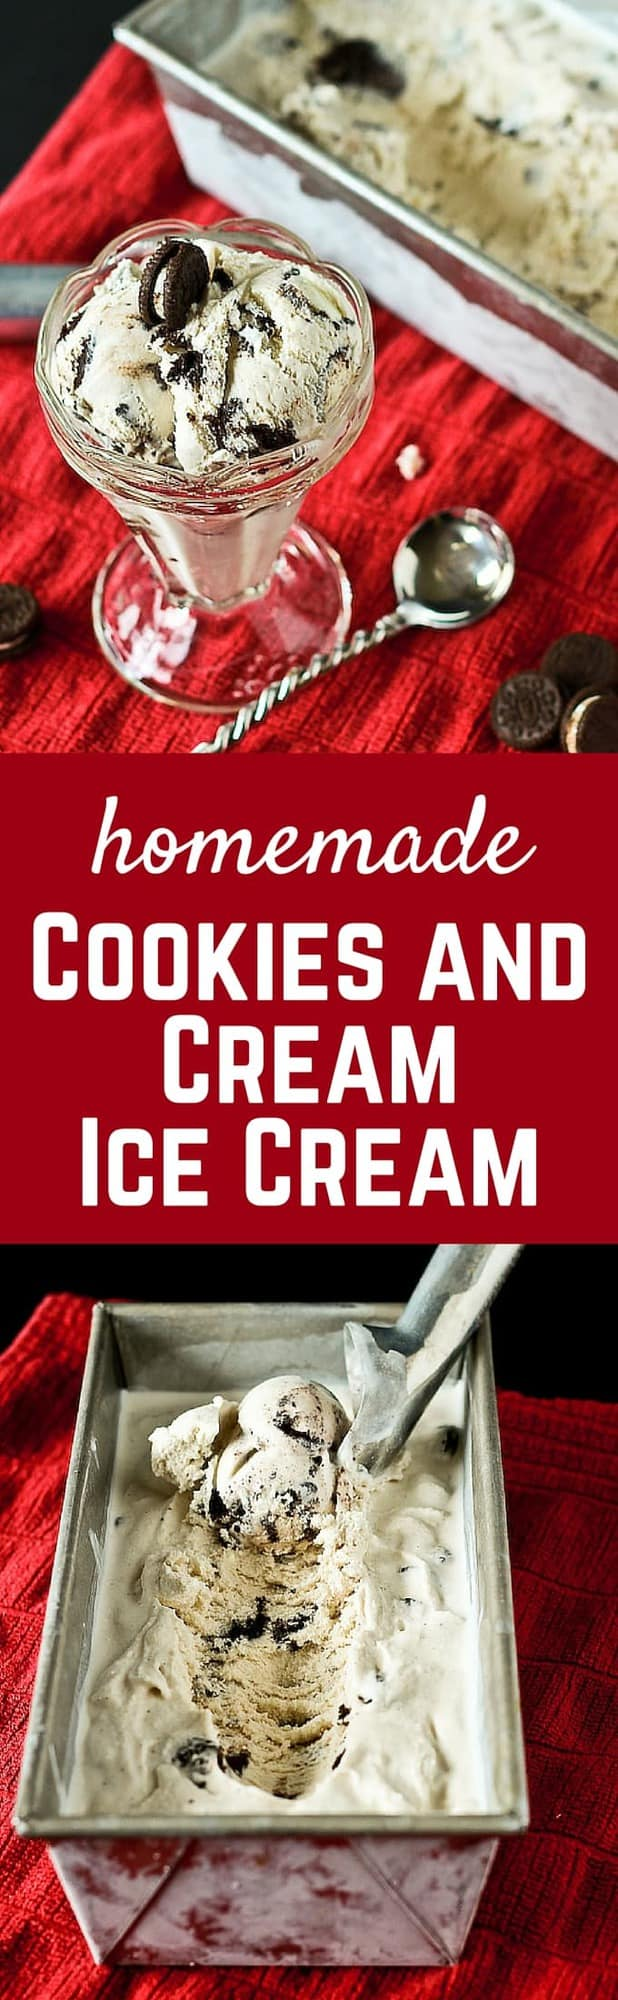 Homemade Cookies and Cream Ice Cream - You can't beat this classic flavor! - Get the recipe on RachelCooks.com